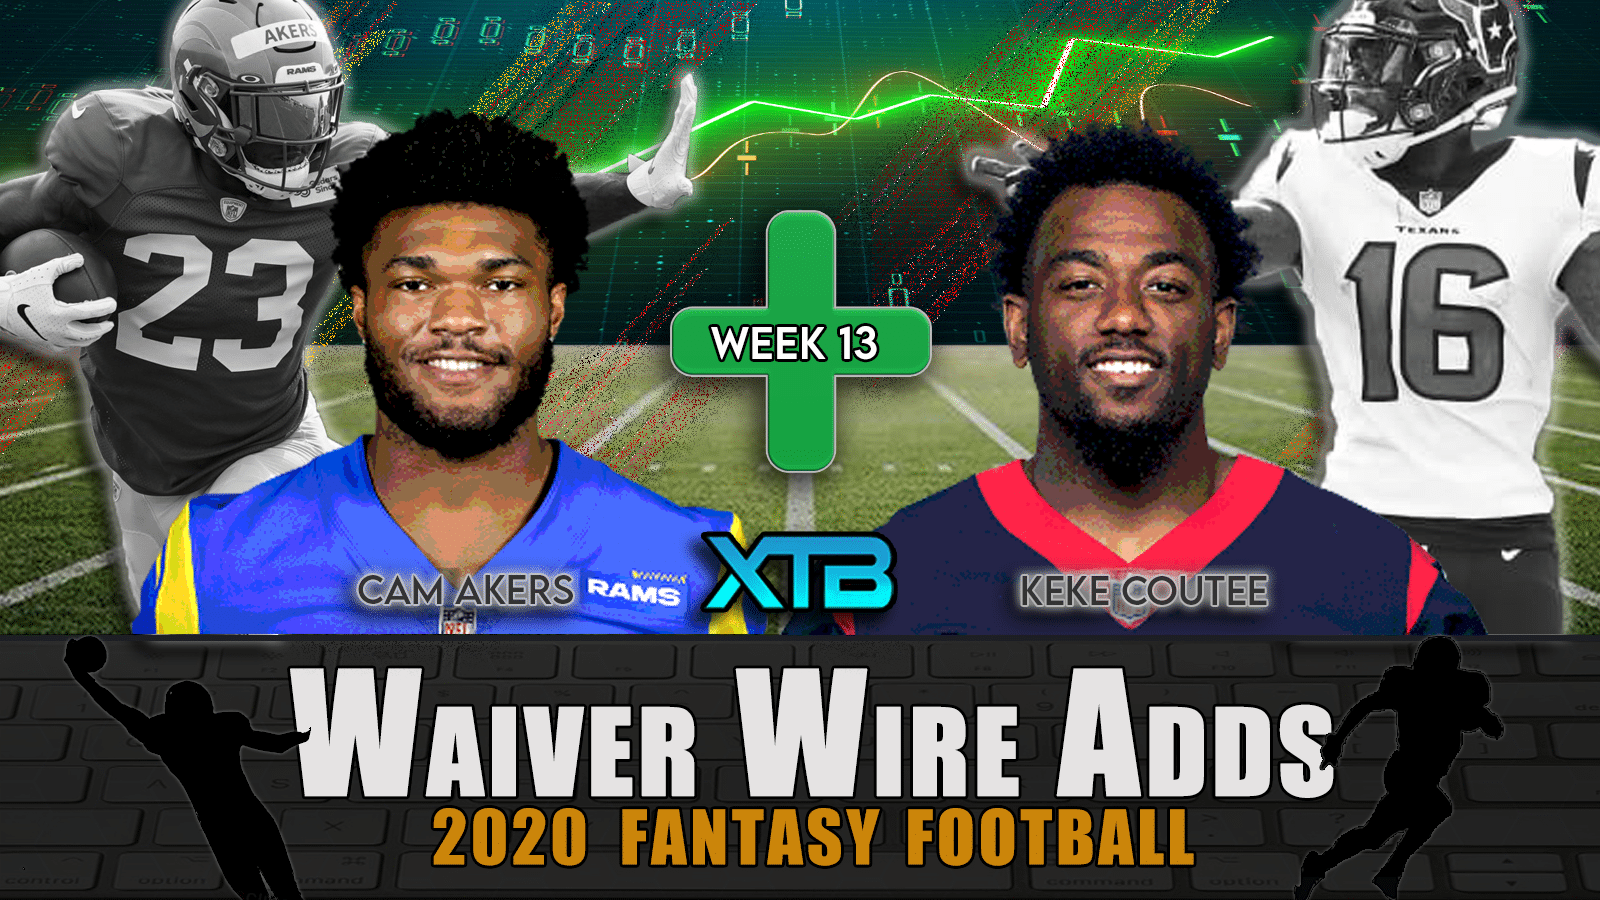 Week 13 Waiver Wire